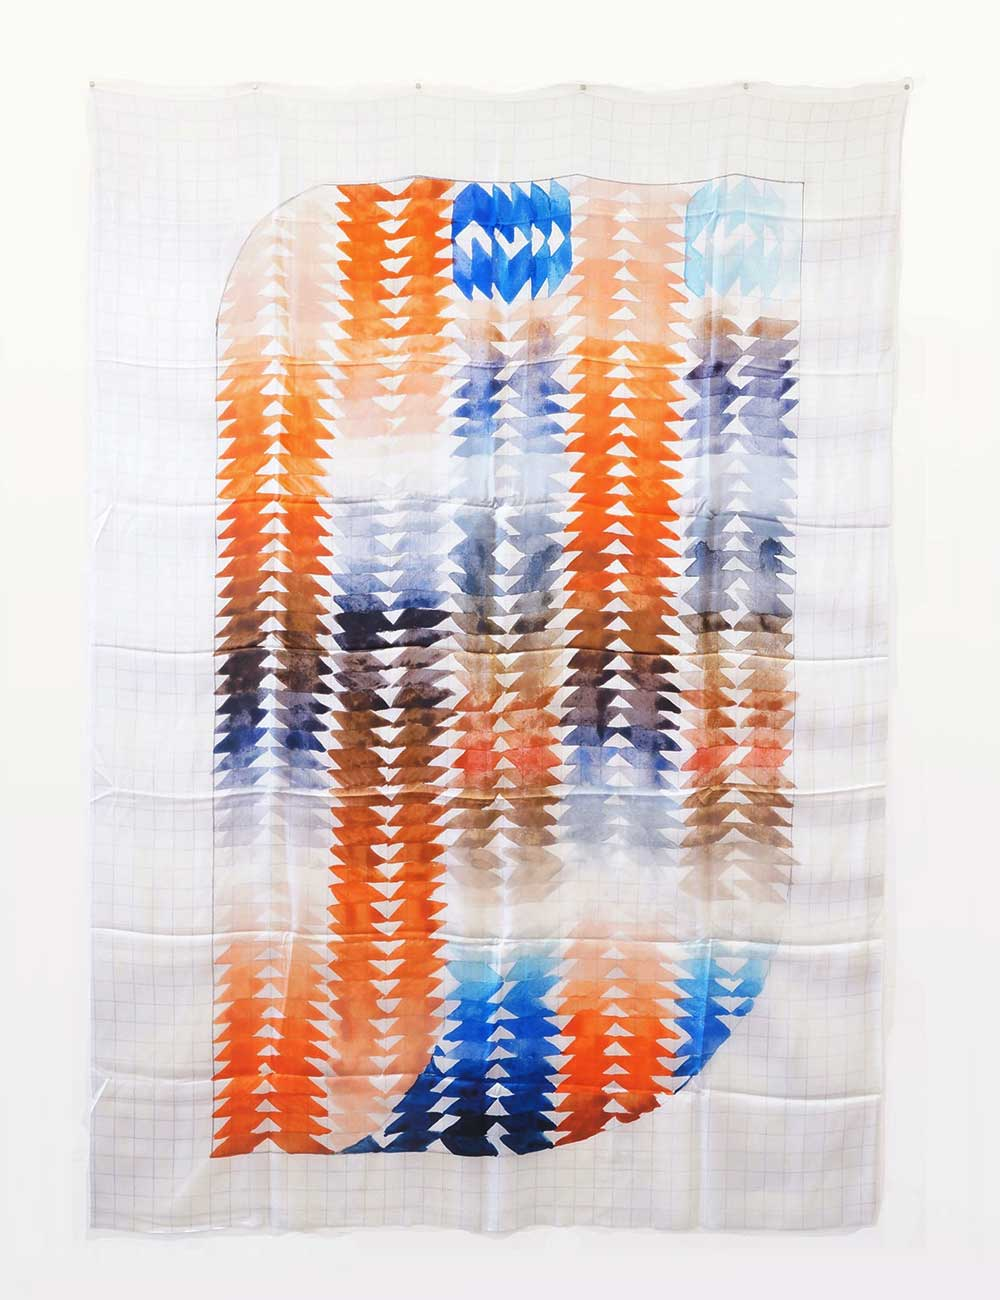 A high resolution scan of the gridded notebook is then digitally printed onto silk at a large scale.